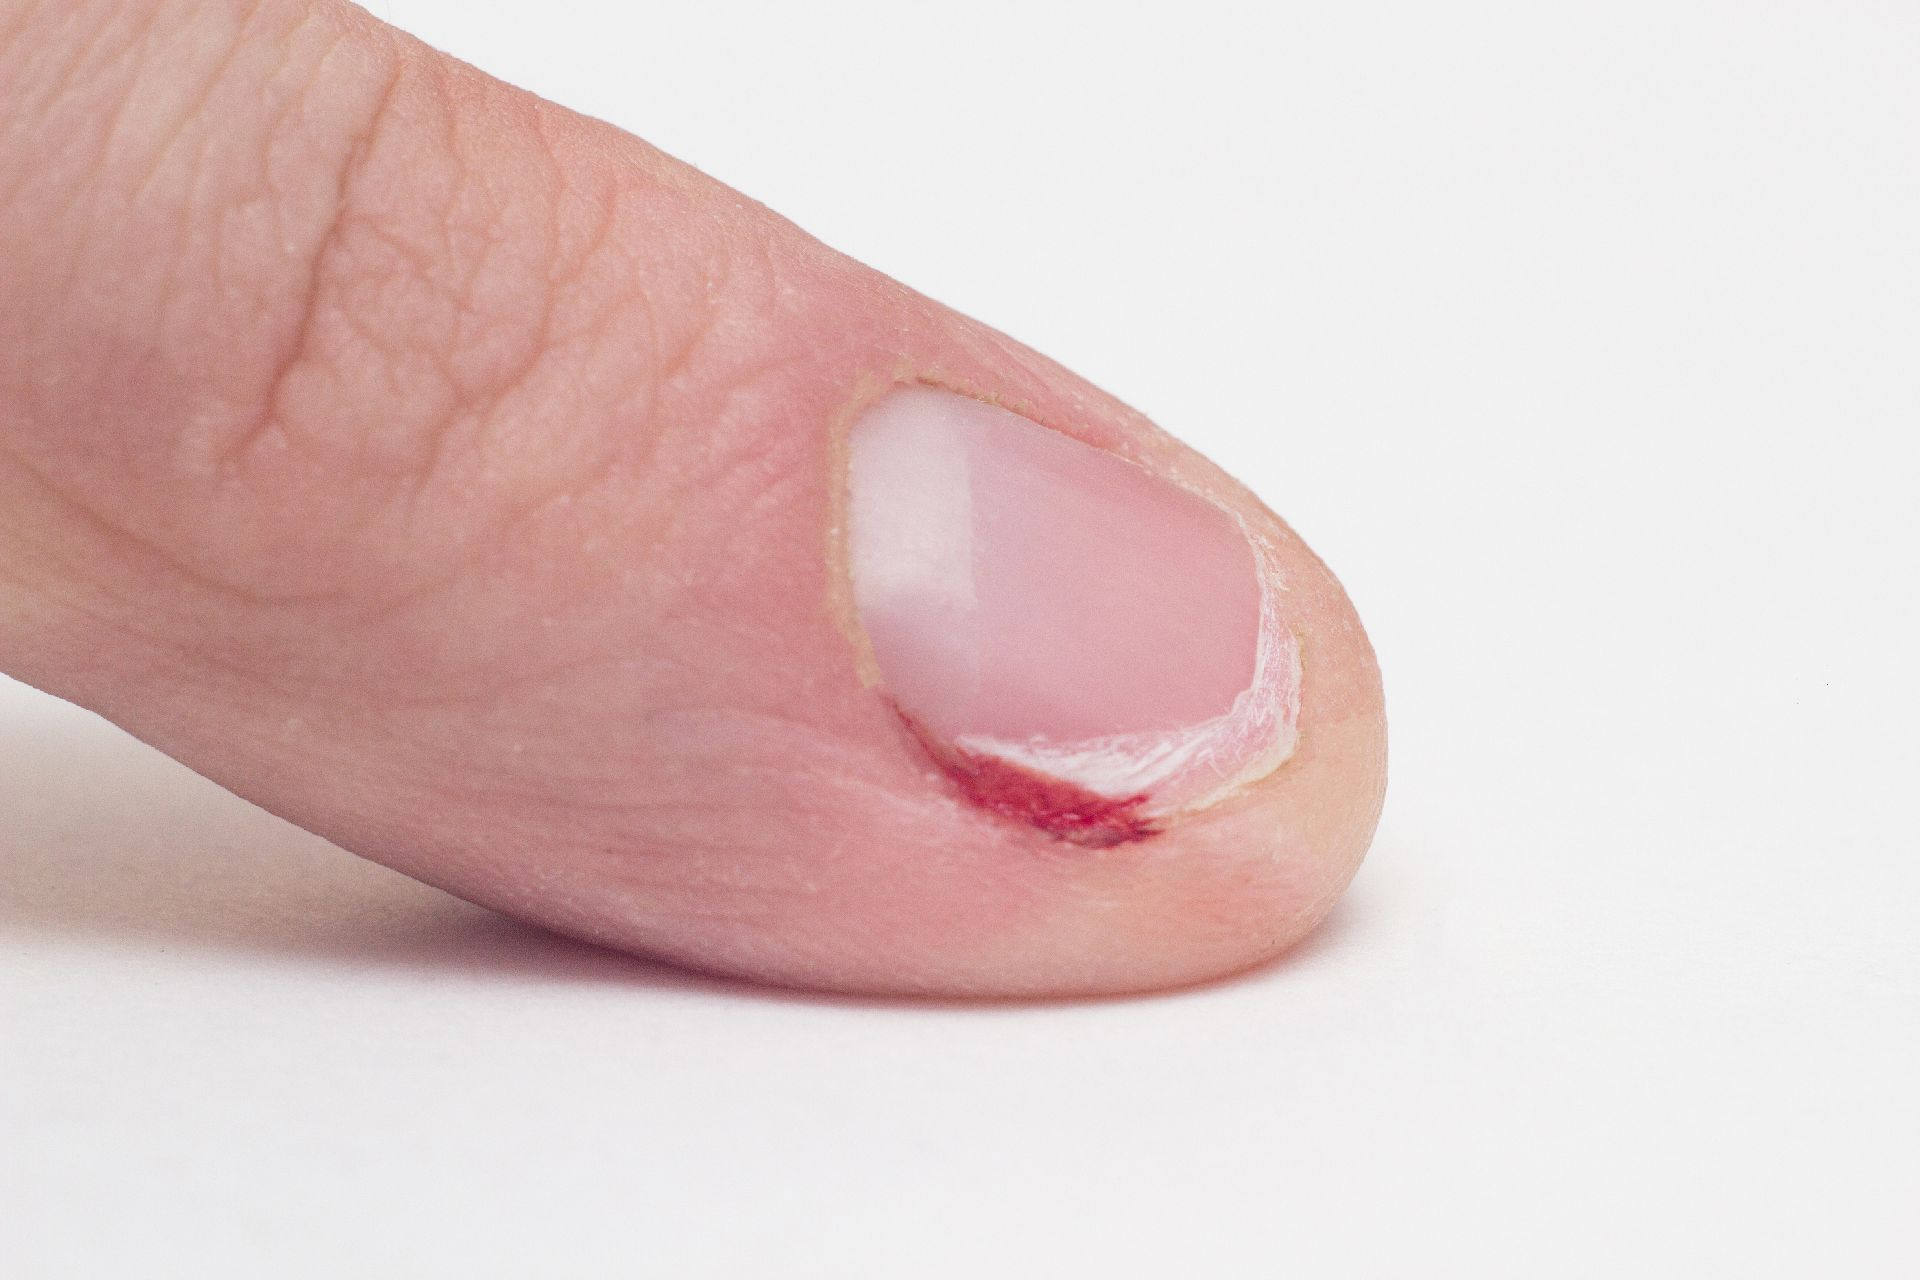 Finger with gnawed nail and cuticle with blood, macro, white background, habit, medical